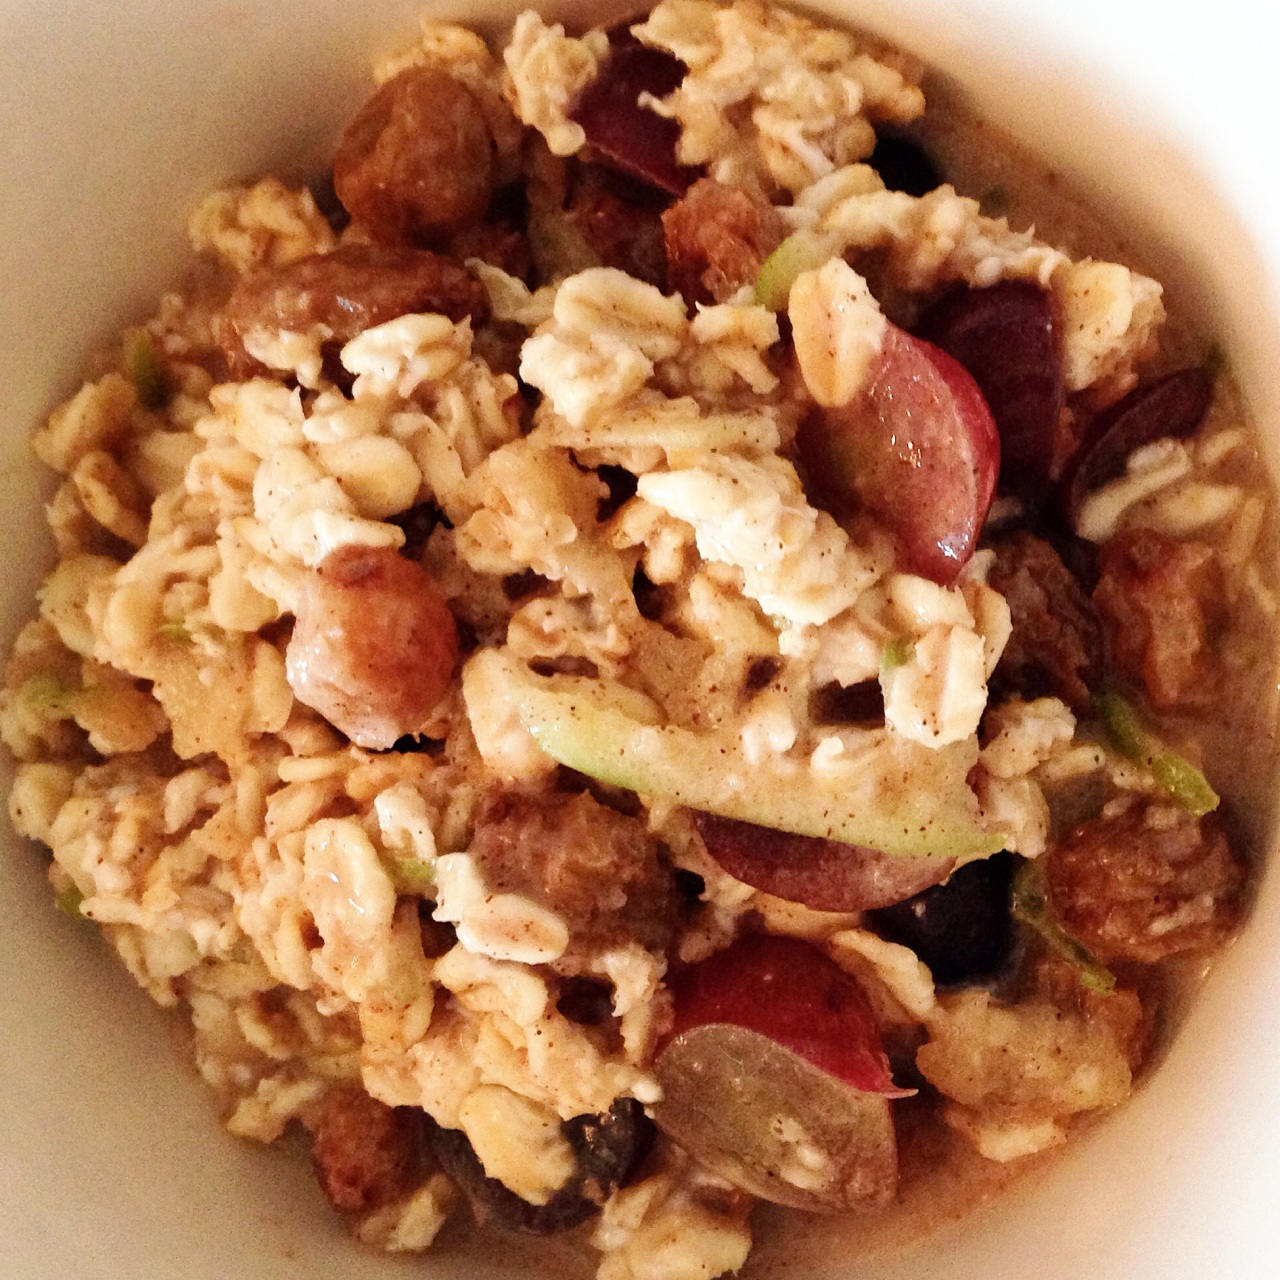 Basic bircher muesli recipe